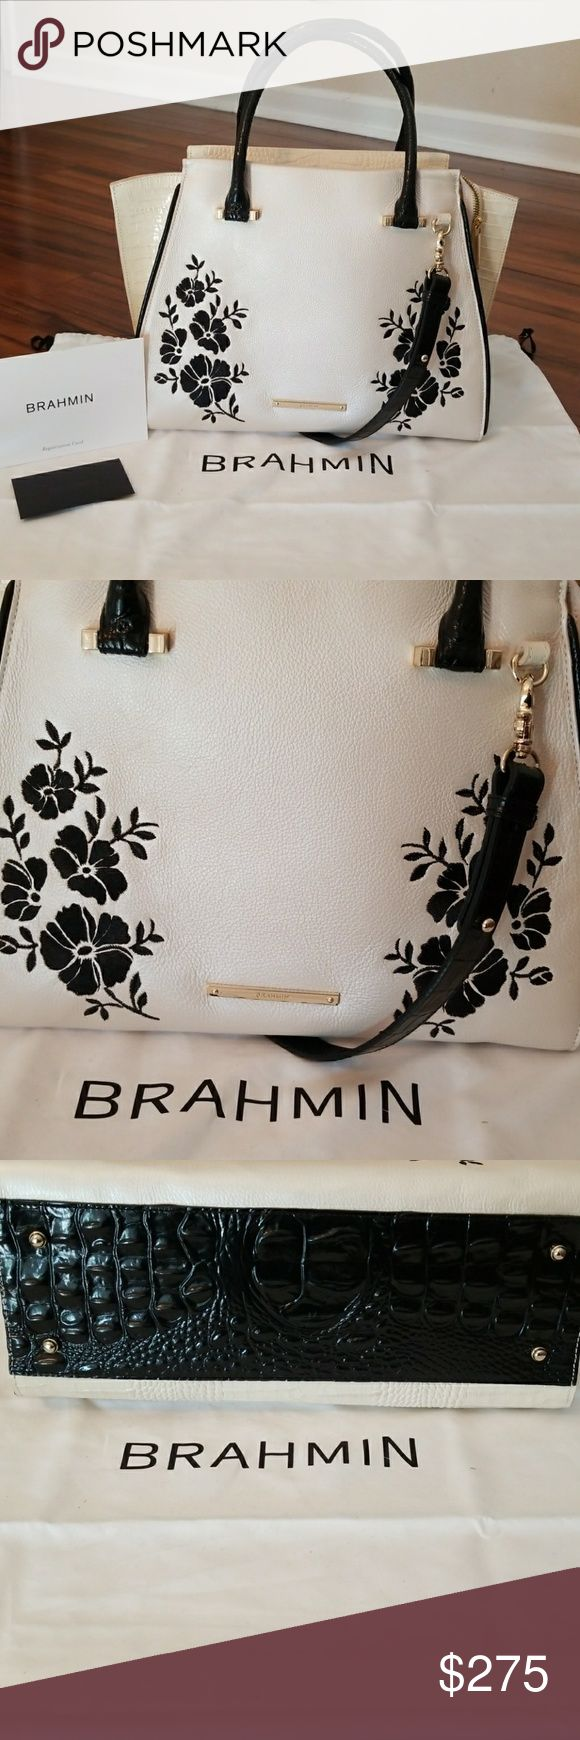 """🖤Priscilla Satchel Ivory Boracy Brahmin, 🖤 This is a Beautiful embroidered flowers tote comes with registration cards and dust bag carried a few times still beautiful. Chic style with geometric edge. Key clip 5.5"""" handle drop 15.5"""" Leather. HAS NO SMOKE SMELLS !!! Brahmin Bags Satchels"""